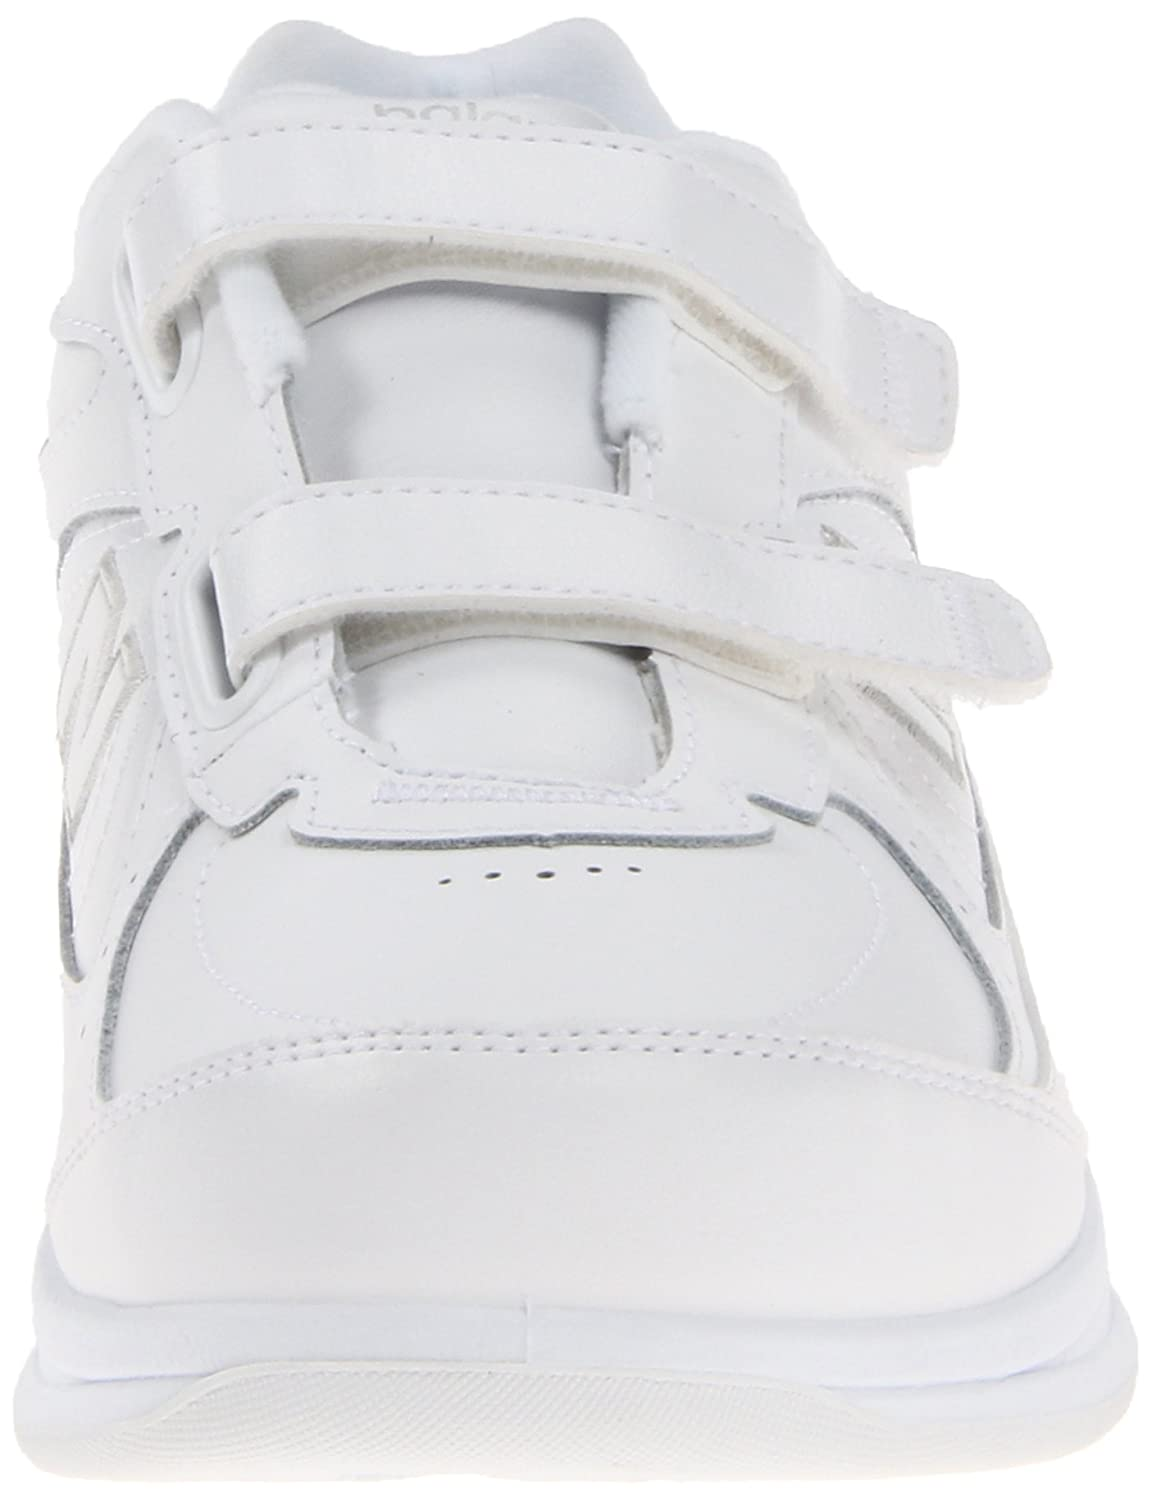 New Balance Women's WW577 Hook and 8 Loop Walking Shoe B003UHUM2G 8 and B(M) US|White 1bdc15